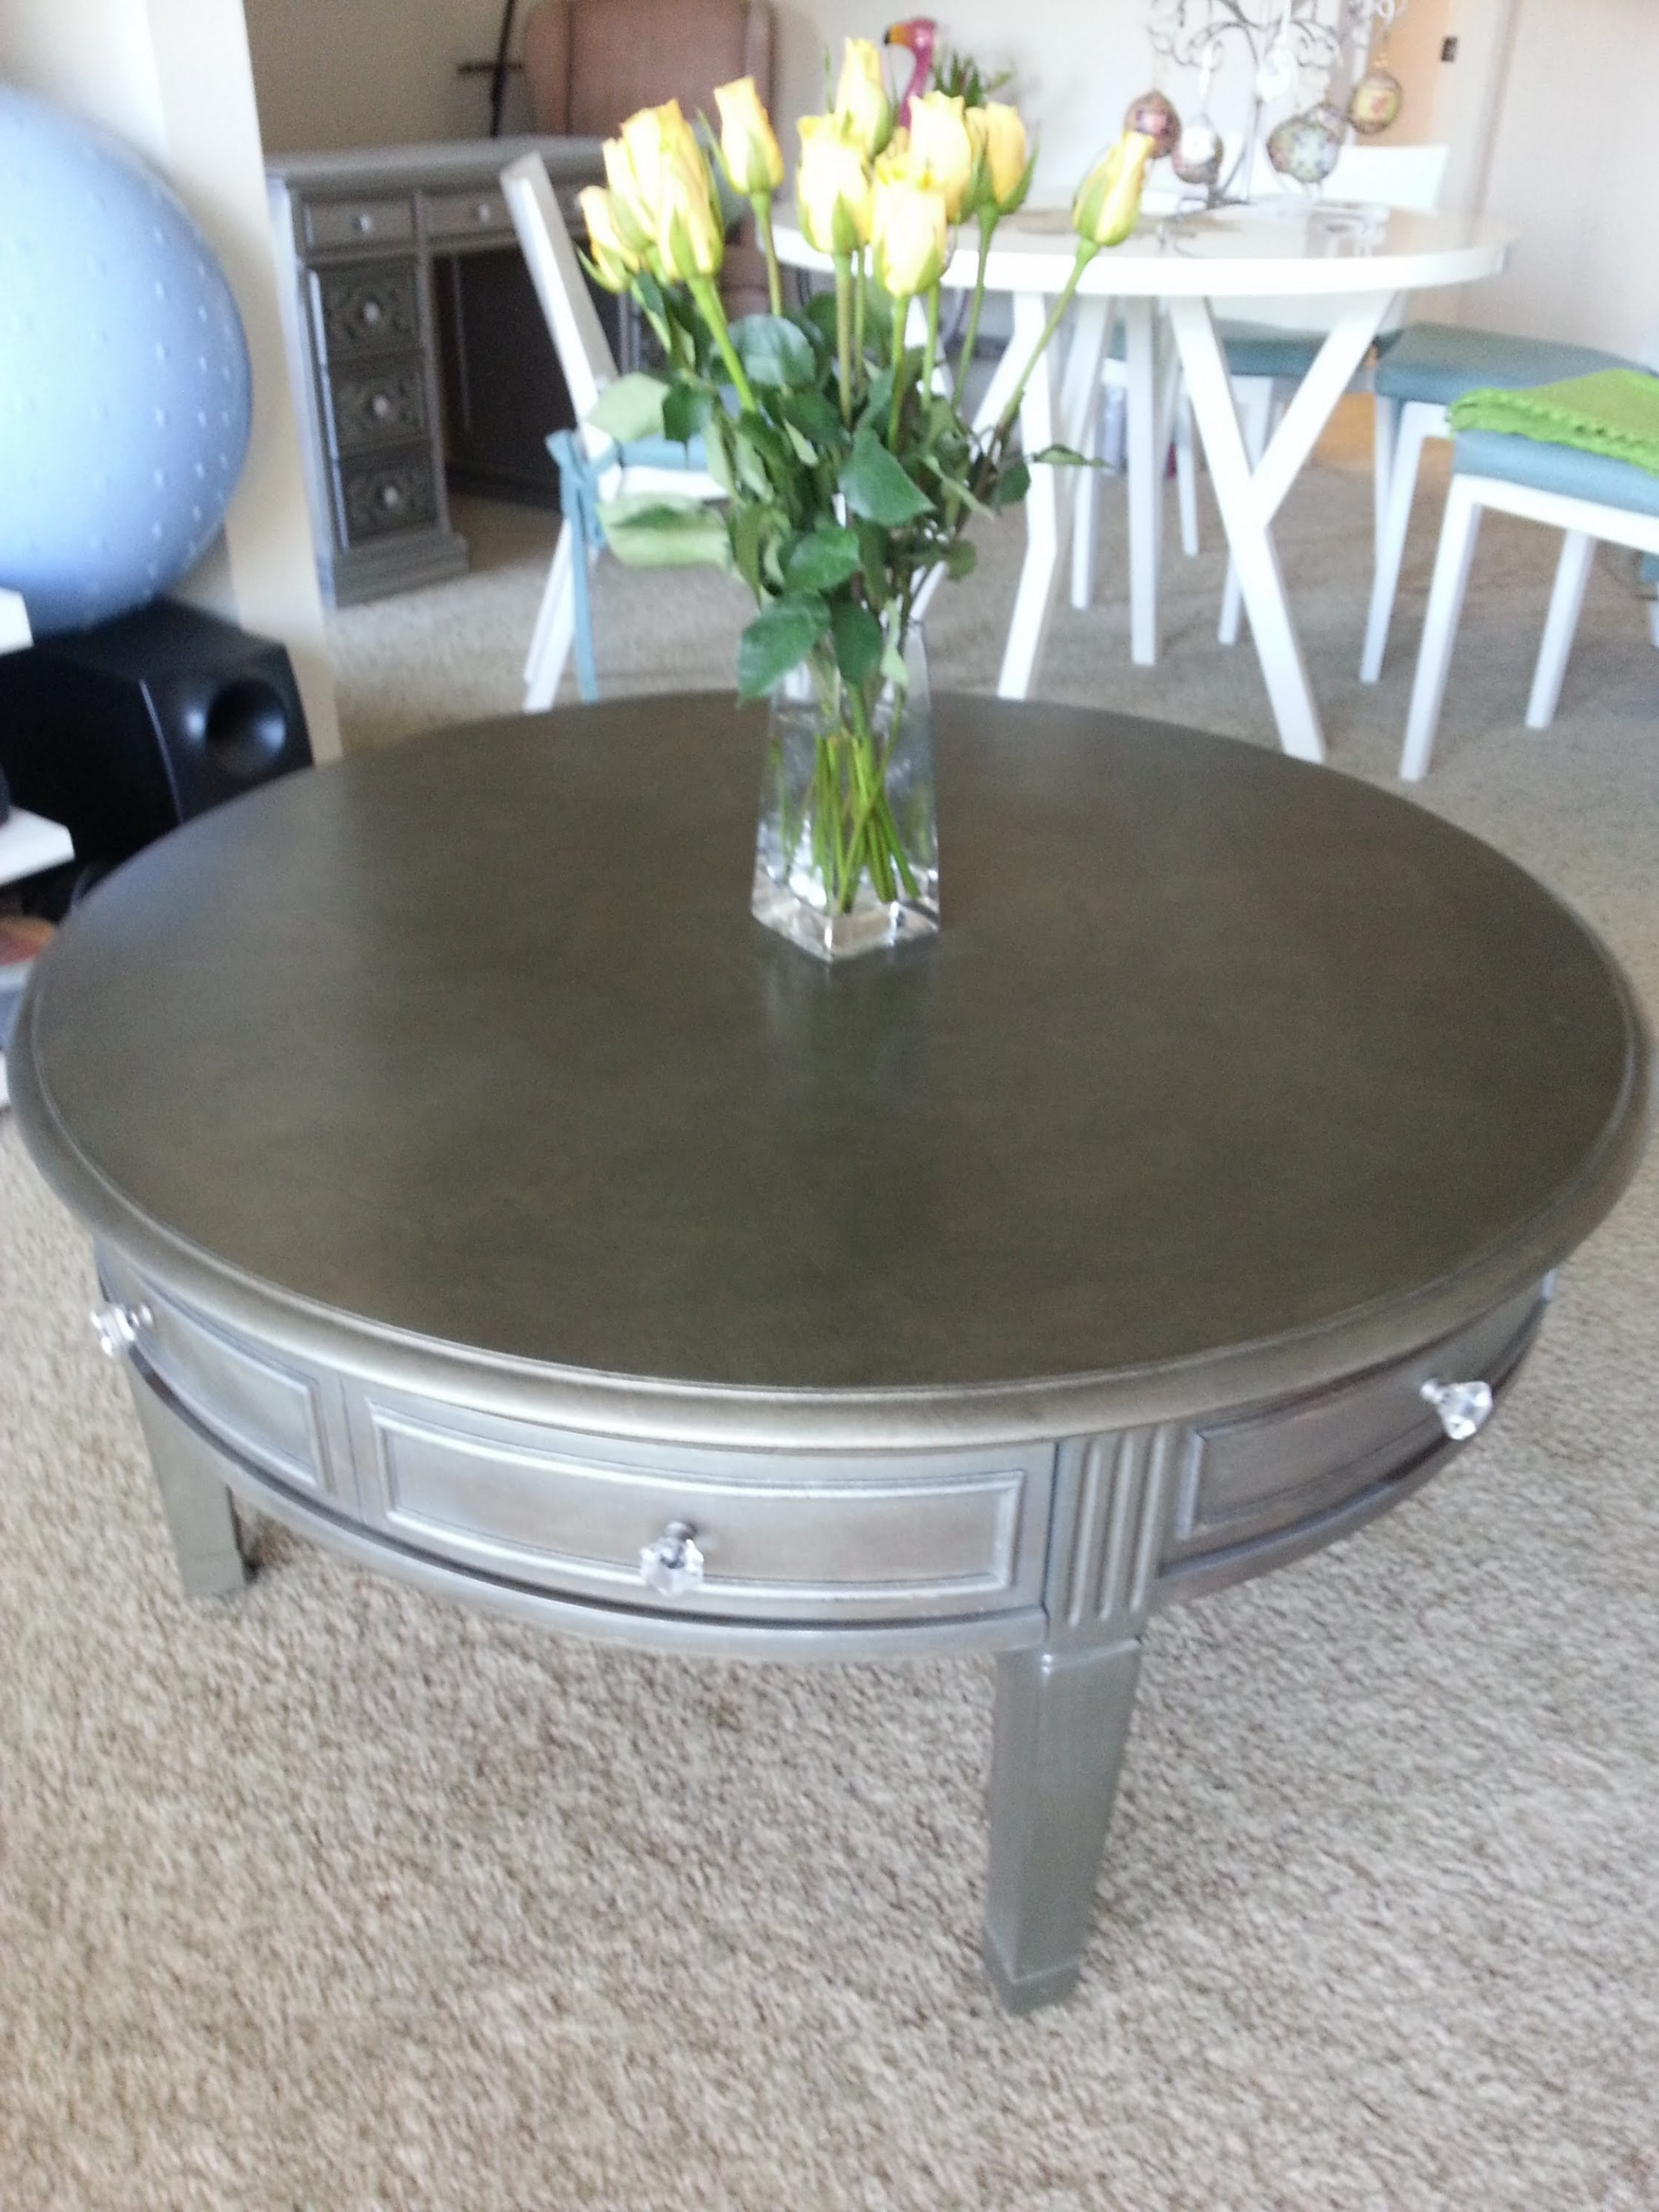 17 Classy Painted Coffee Tables Diy (View 2 of 20)